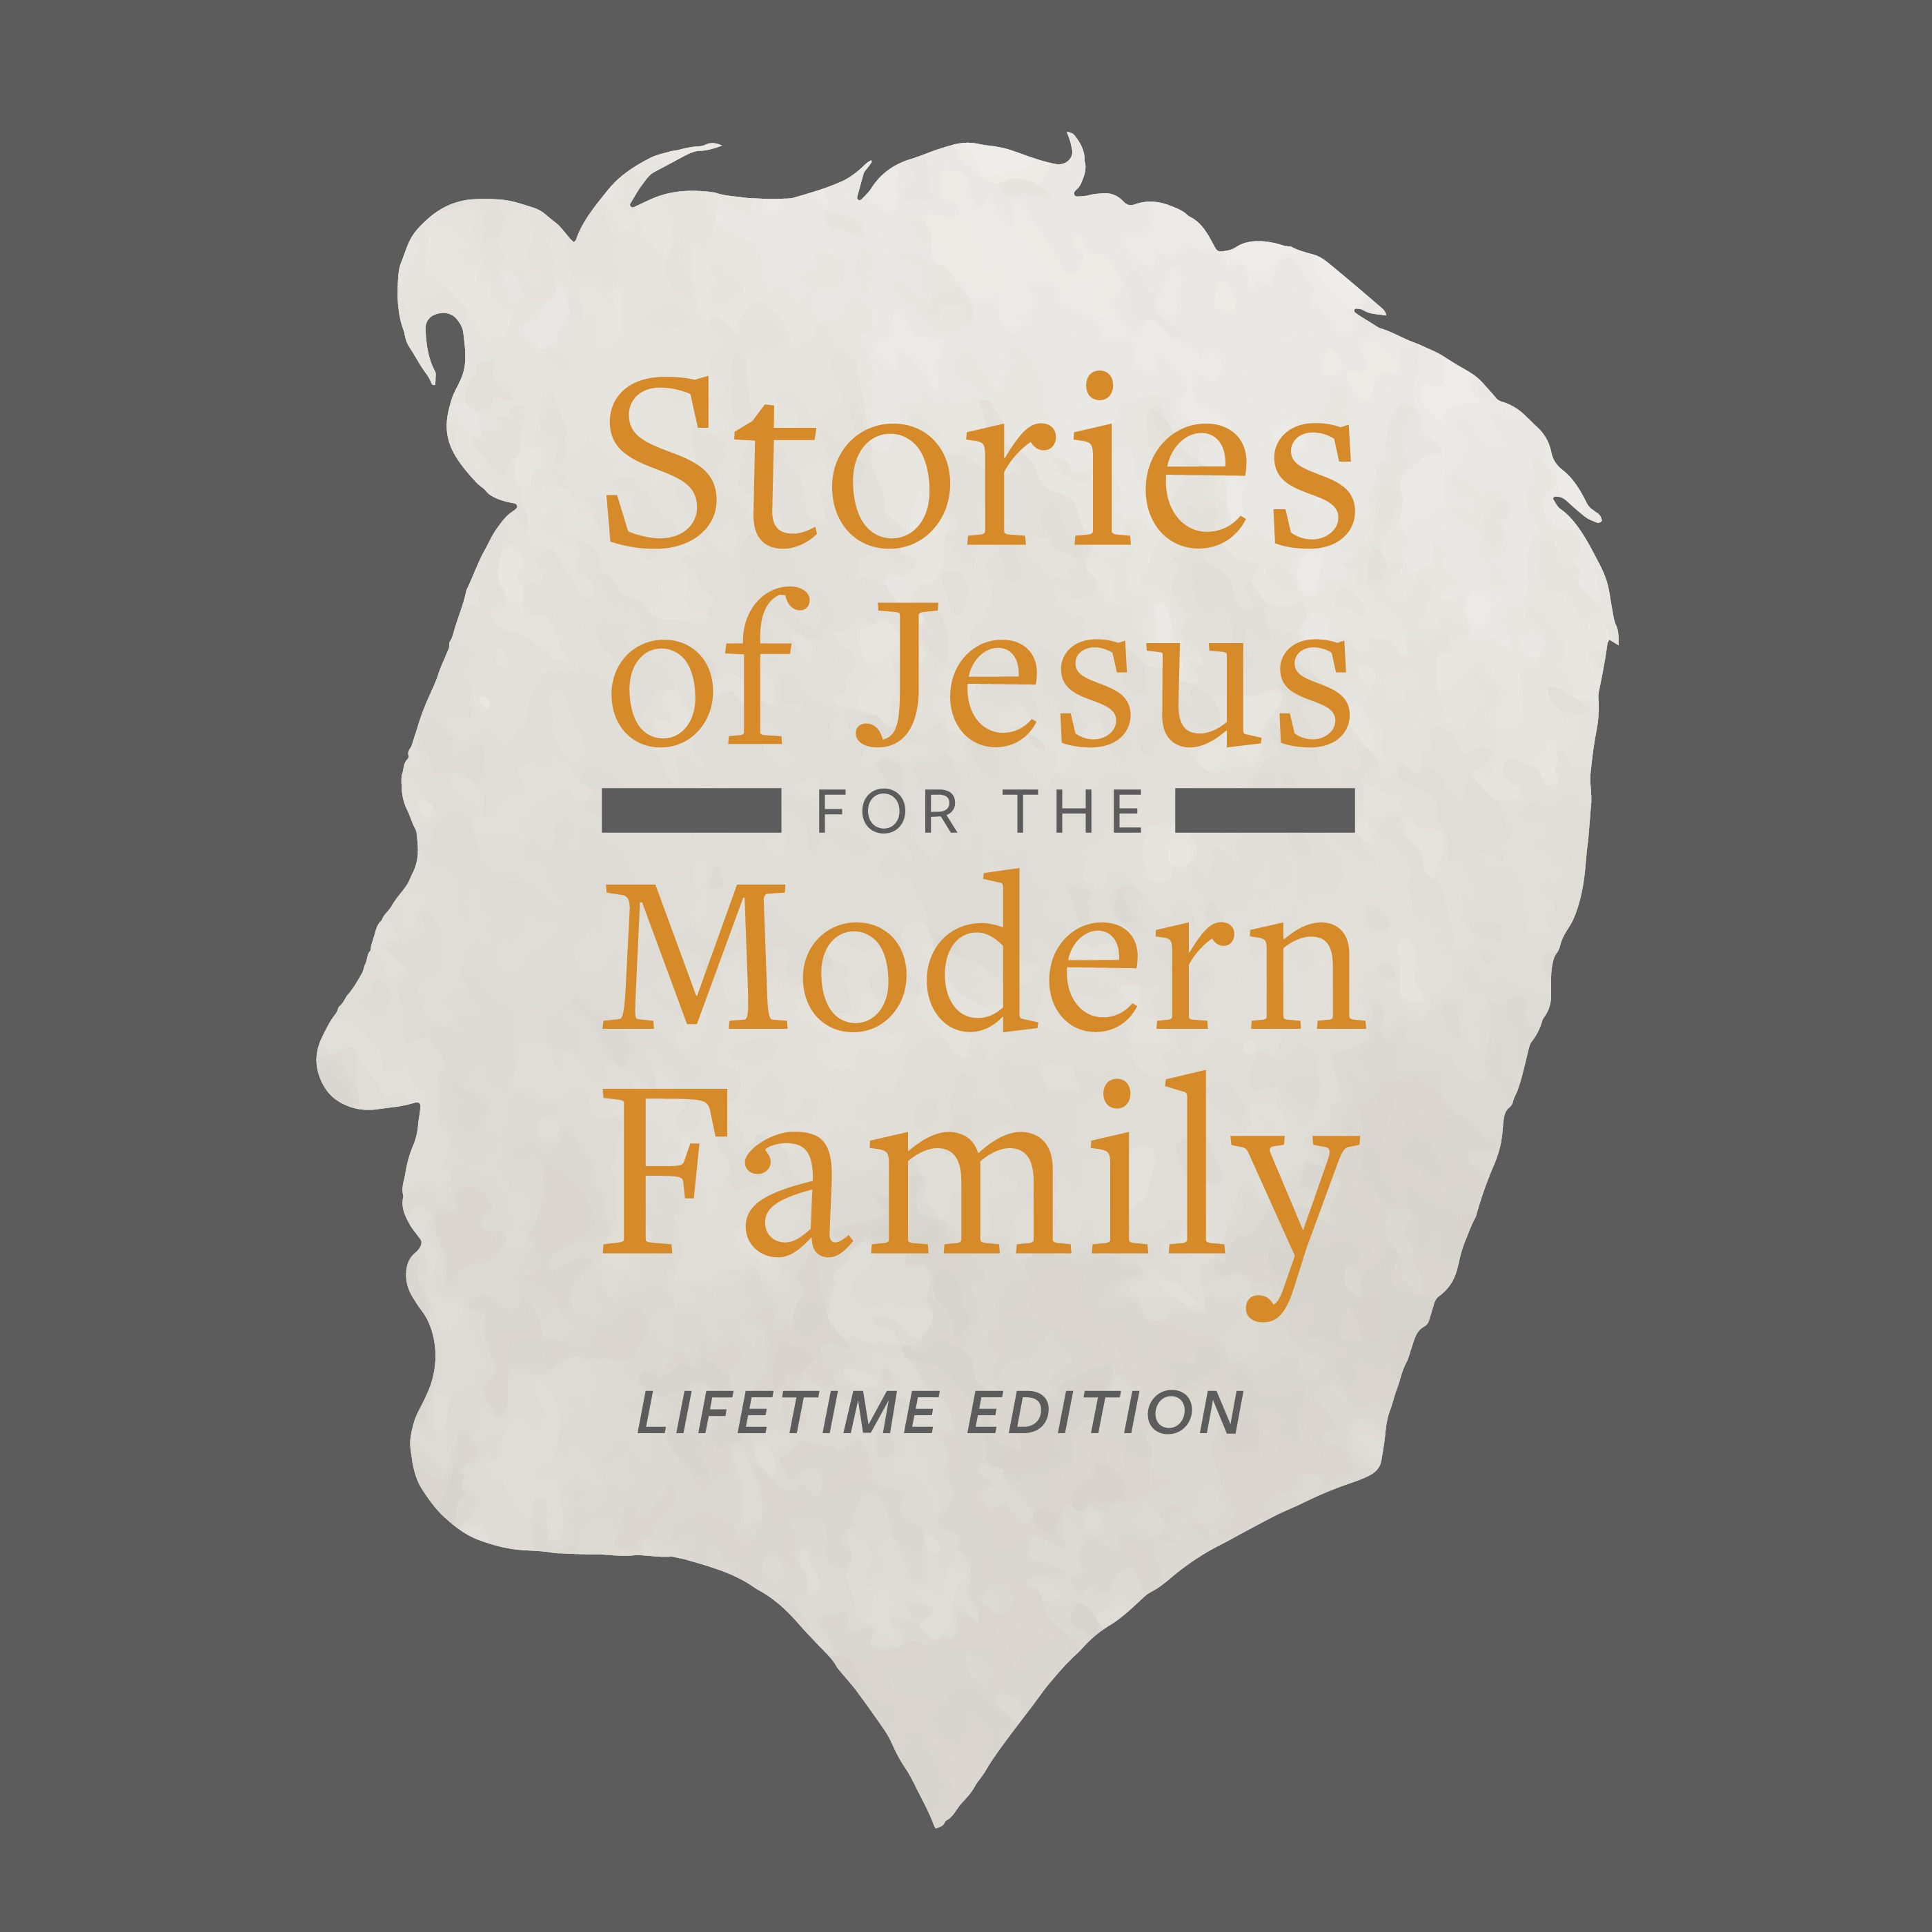 Stories of Jesus for the Modern Family - Lifetime Edition